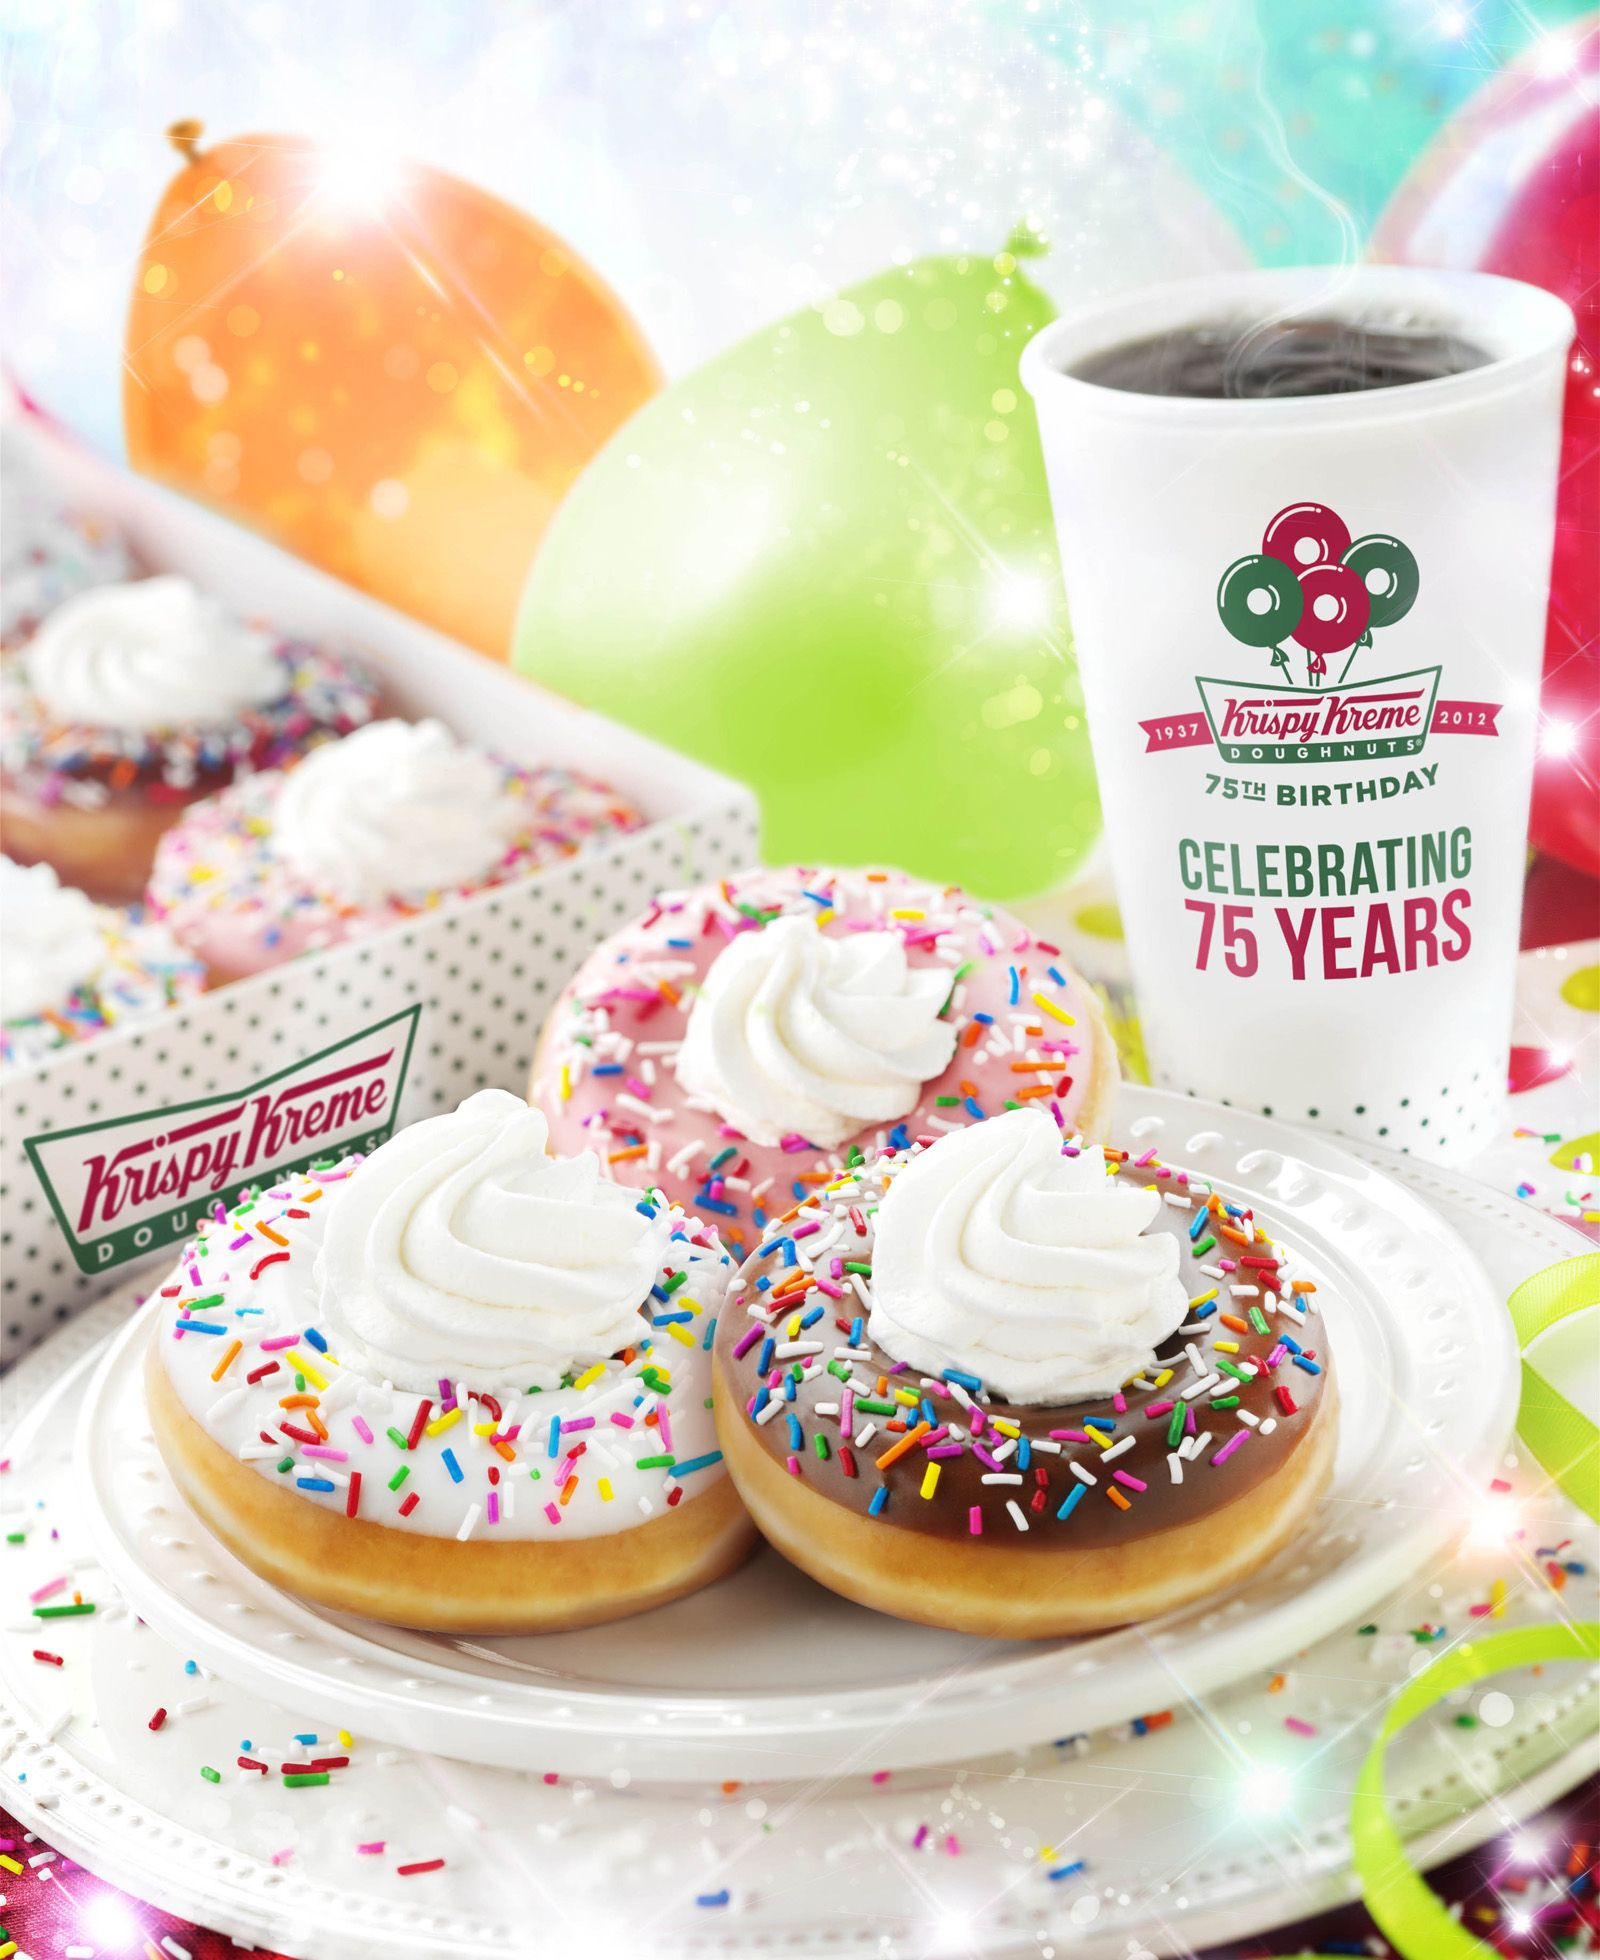 Check out our new birthday doughnuts available at